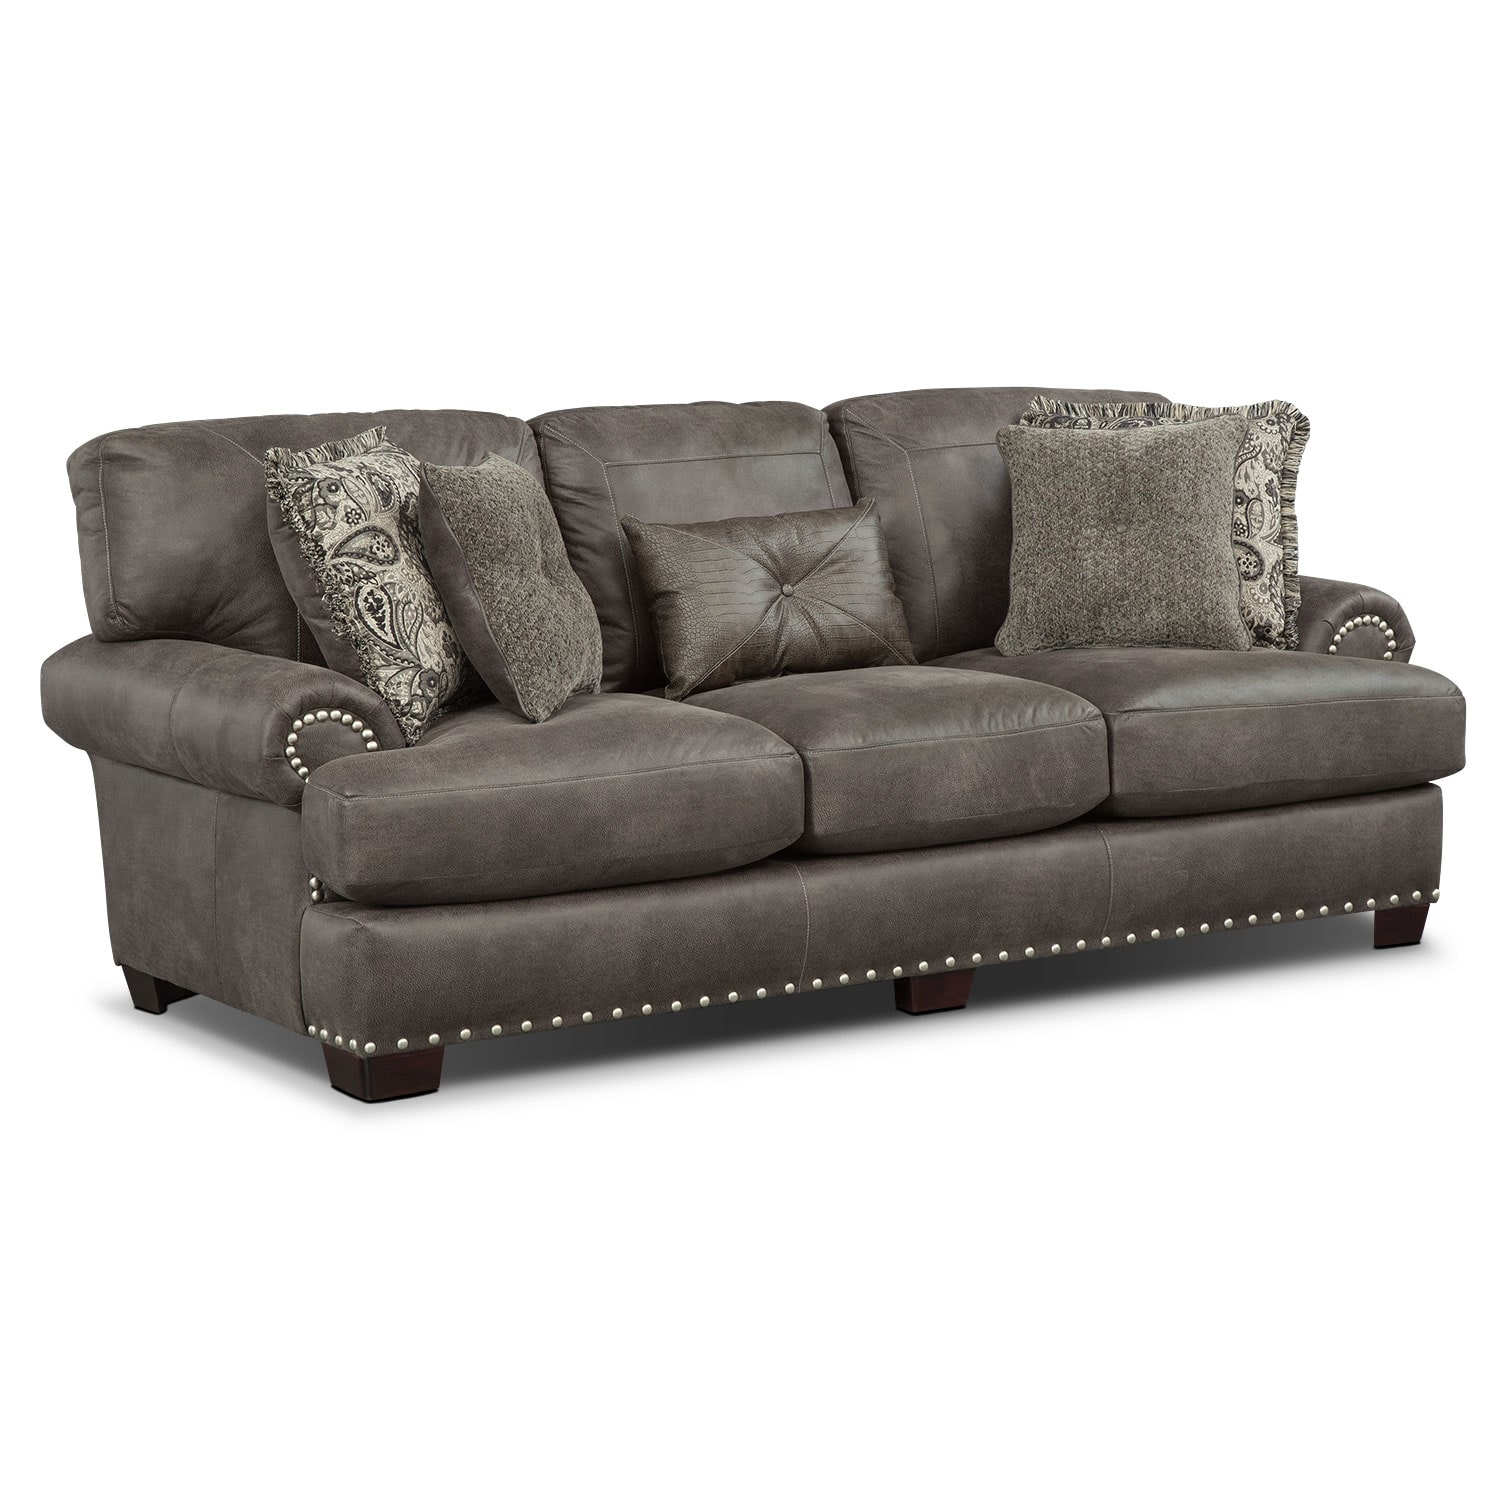 Burlington Sofa - Steel